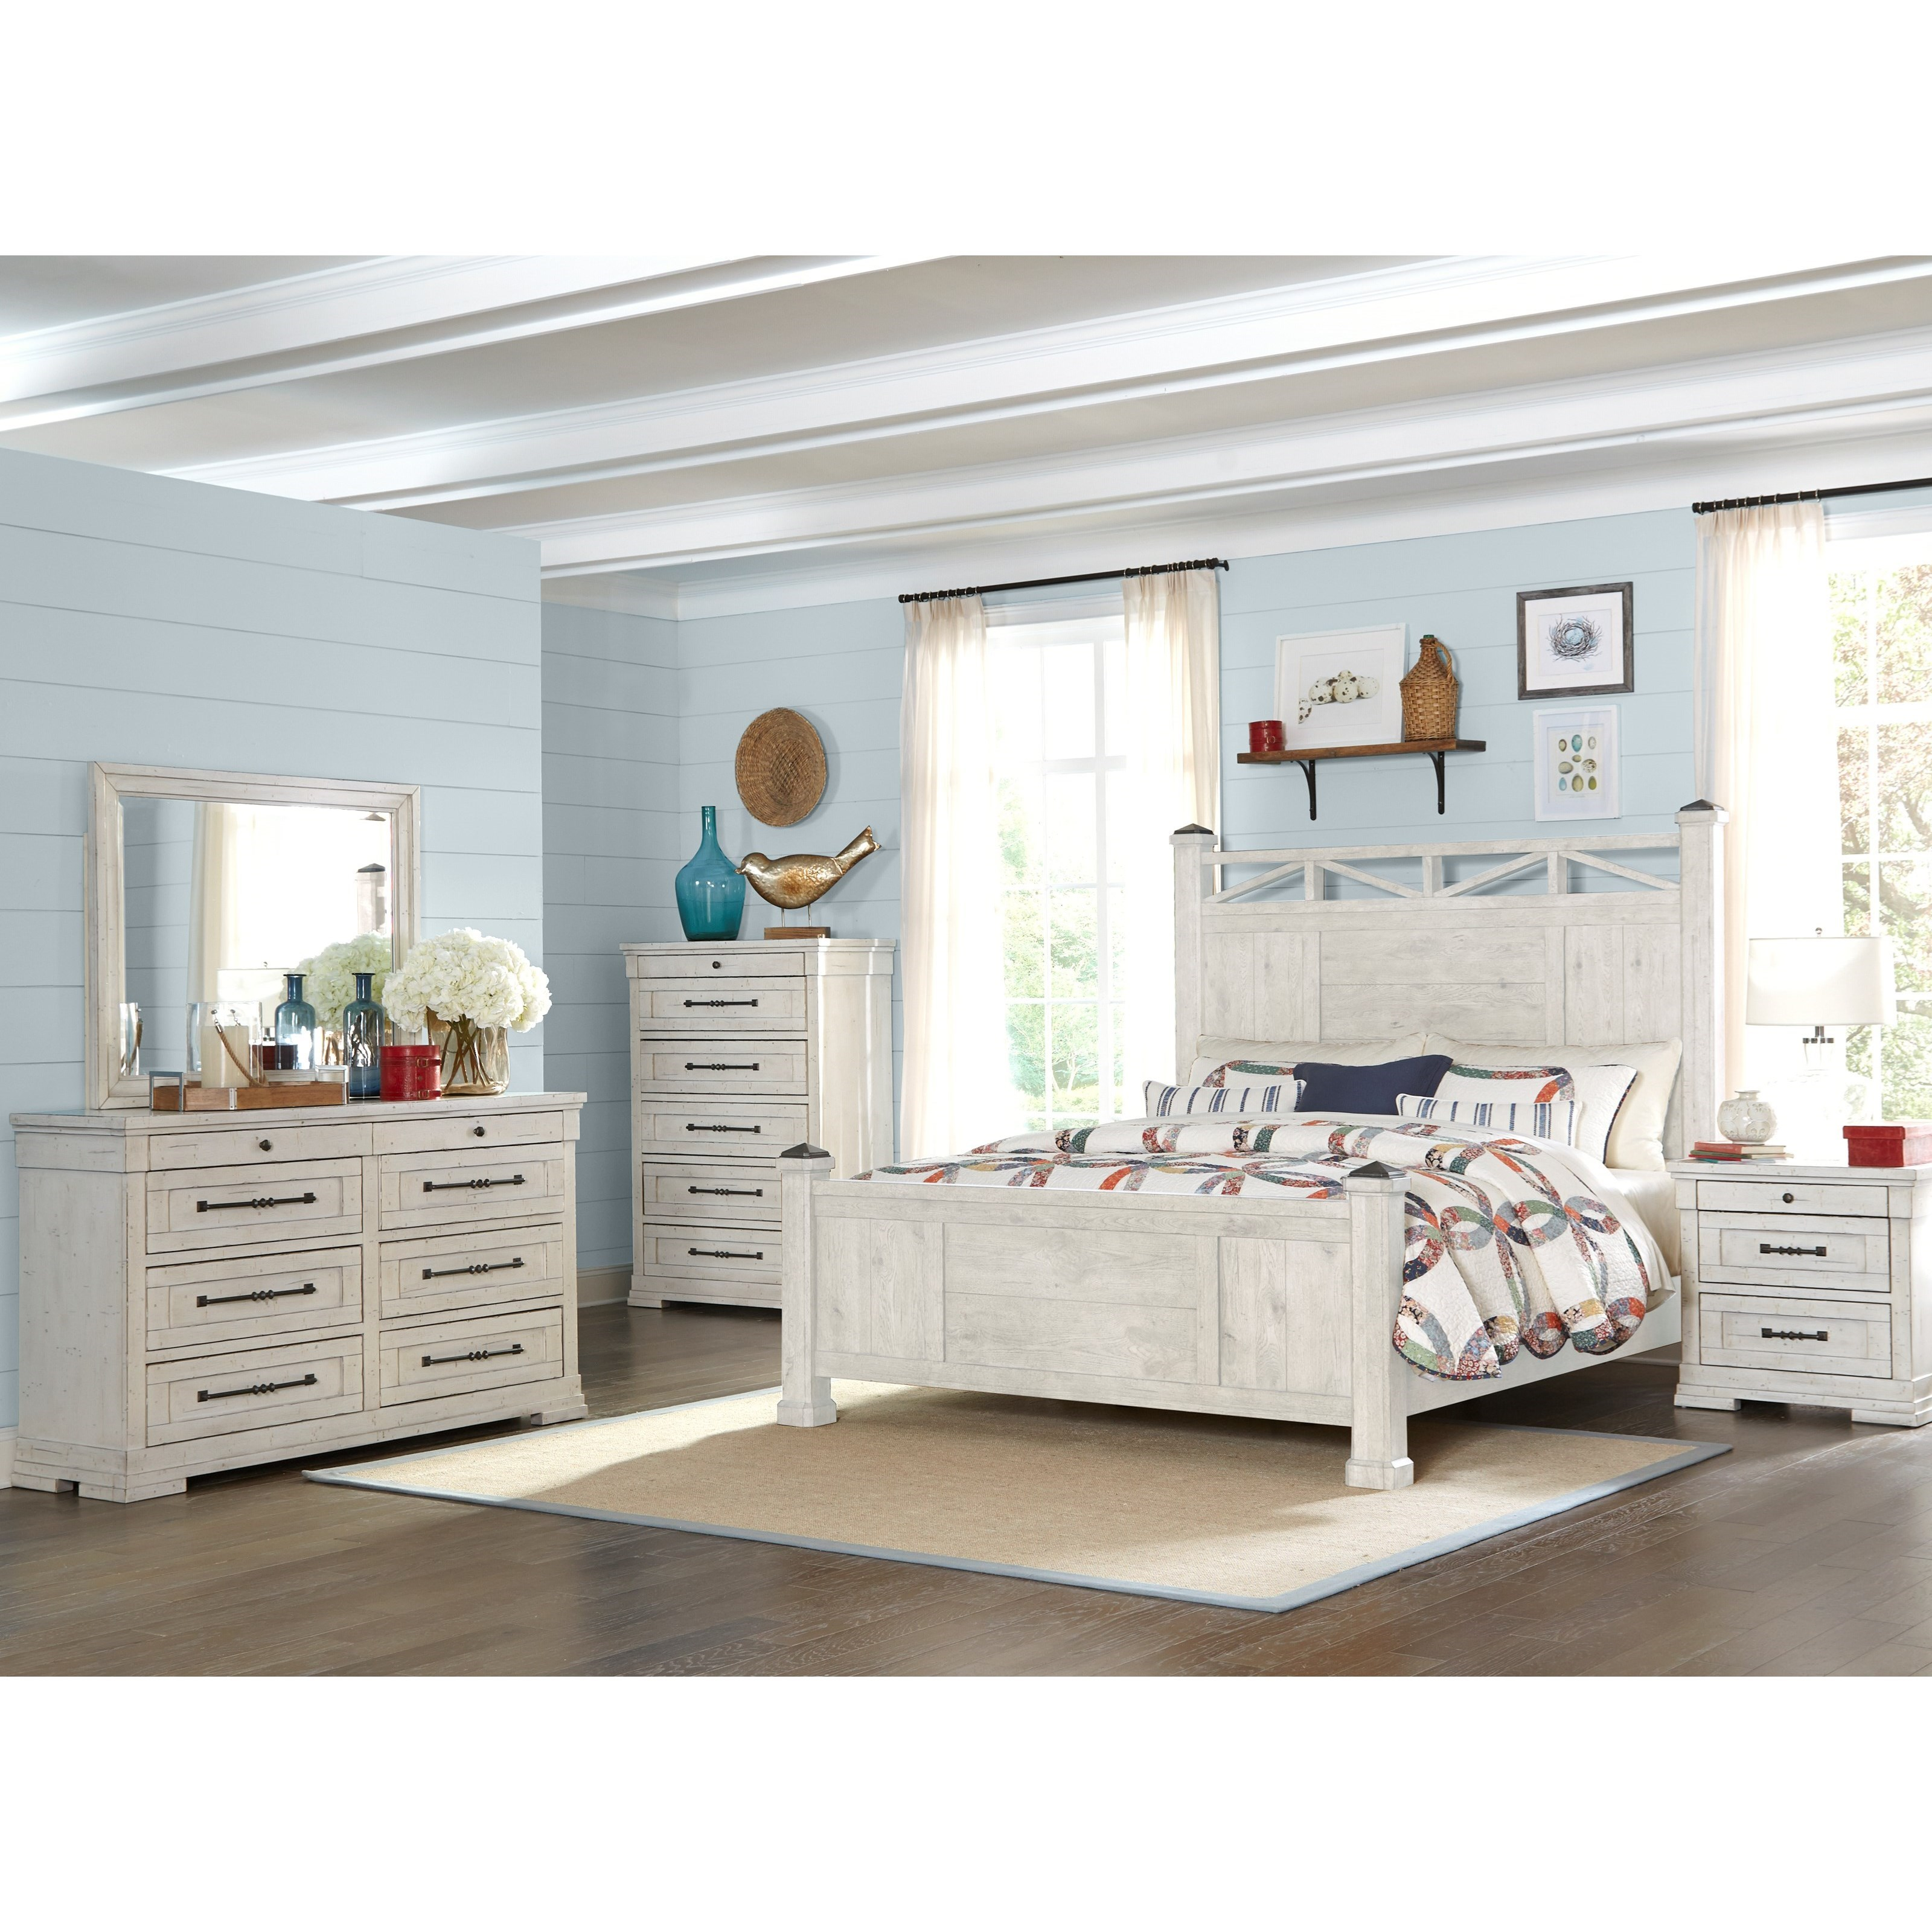 Trisha Yearwood Home Collection By Klaussner Coming Home 926 660 Mirr Refresh Rectangular Mirror